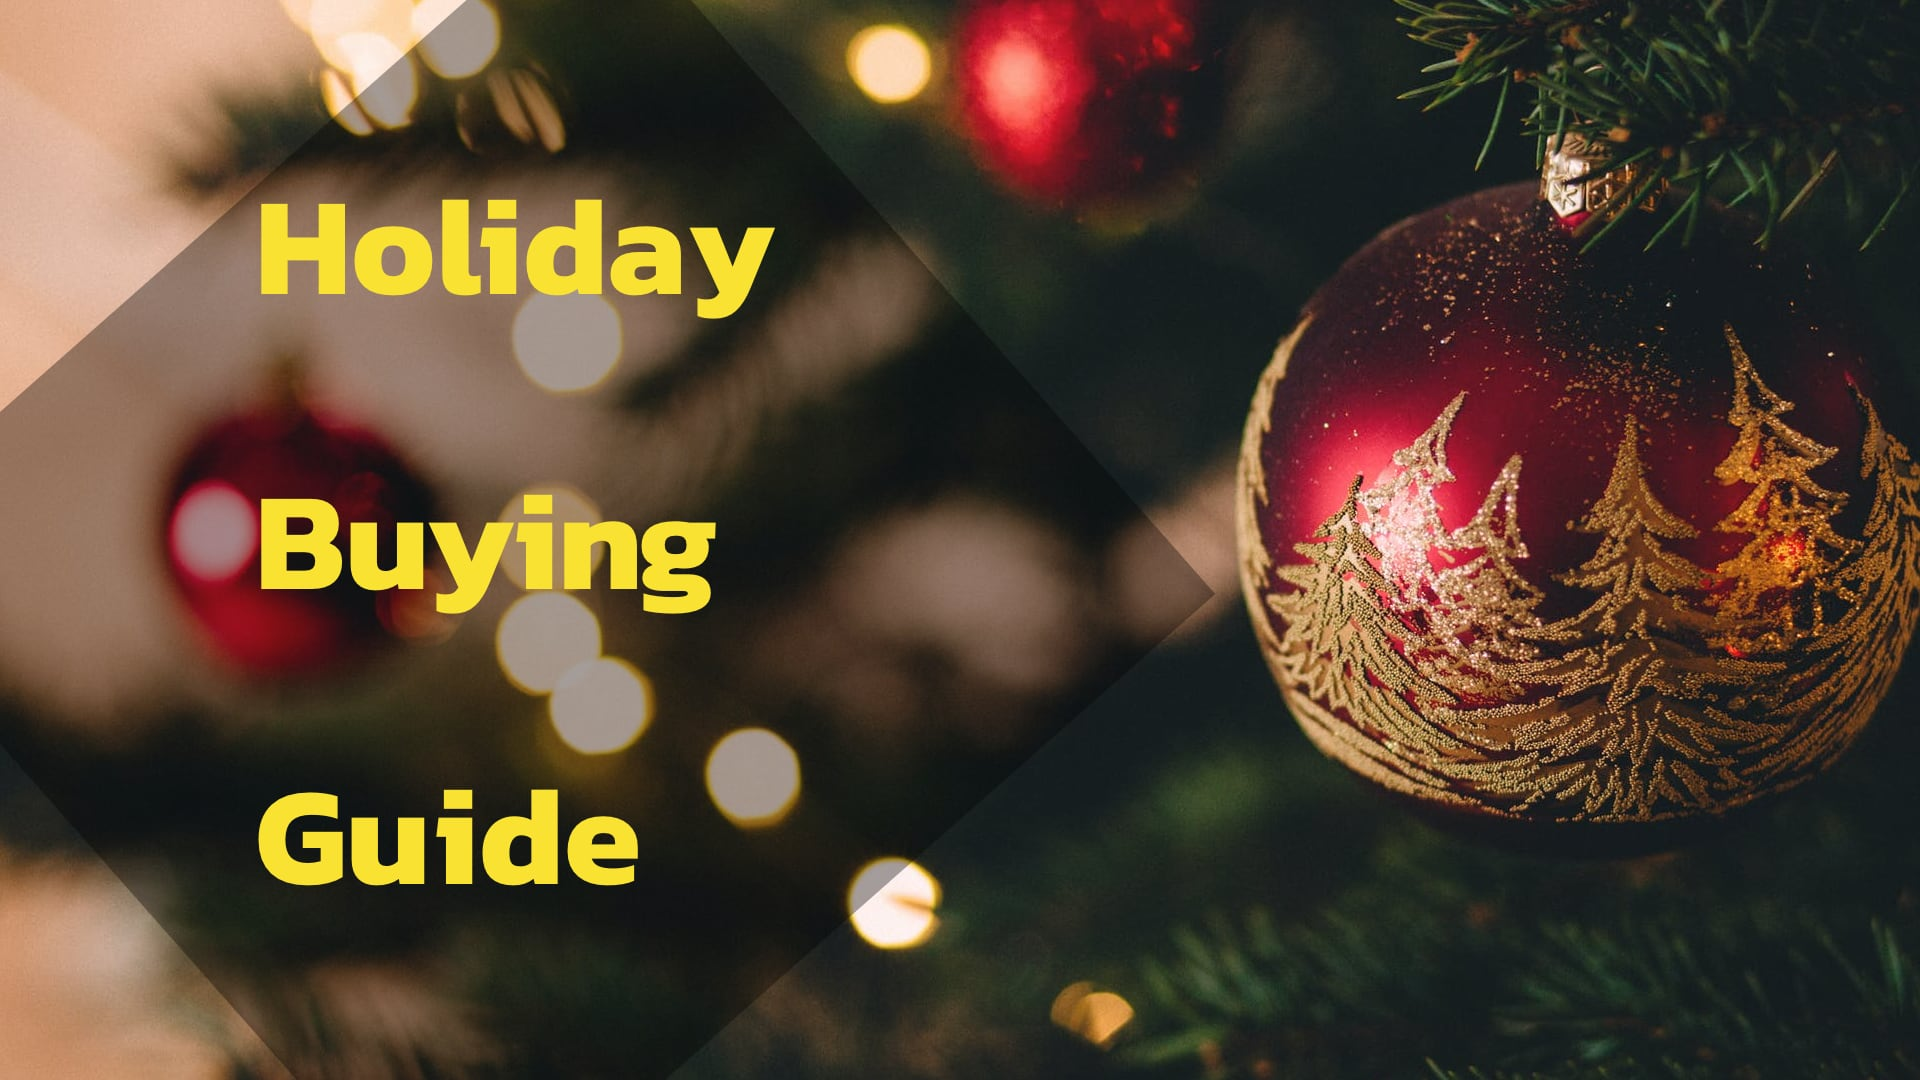 There are a bunch of fun and exciting things to put under the tree for yourself this year...